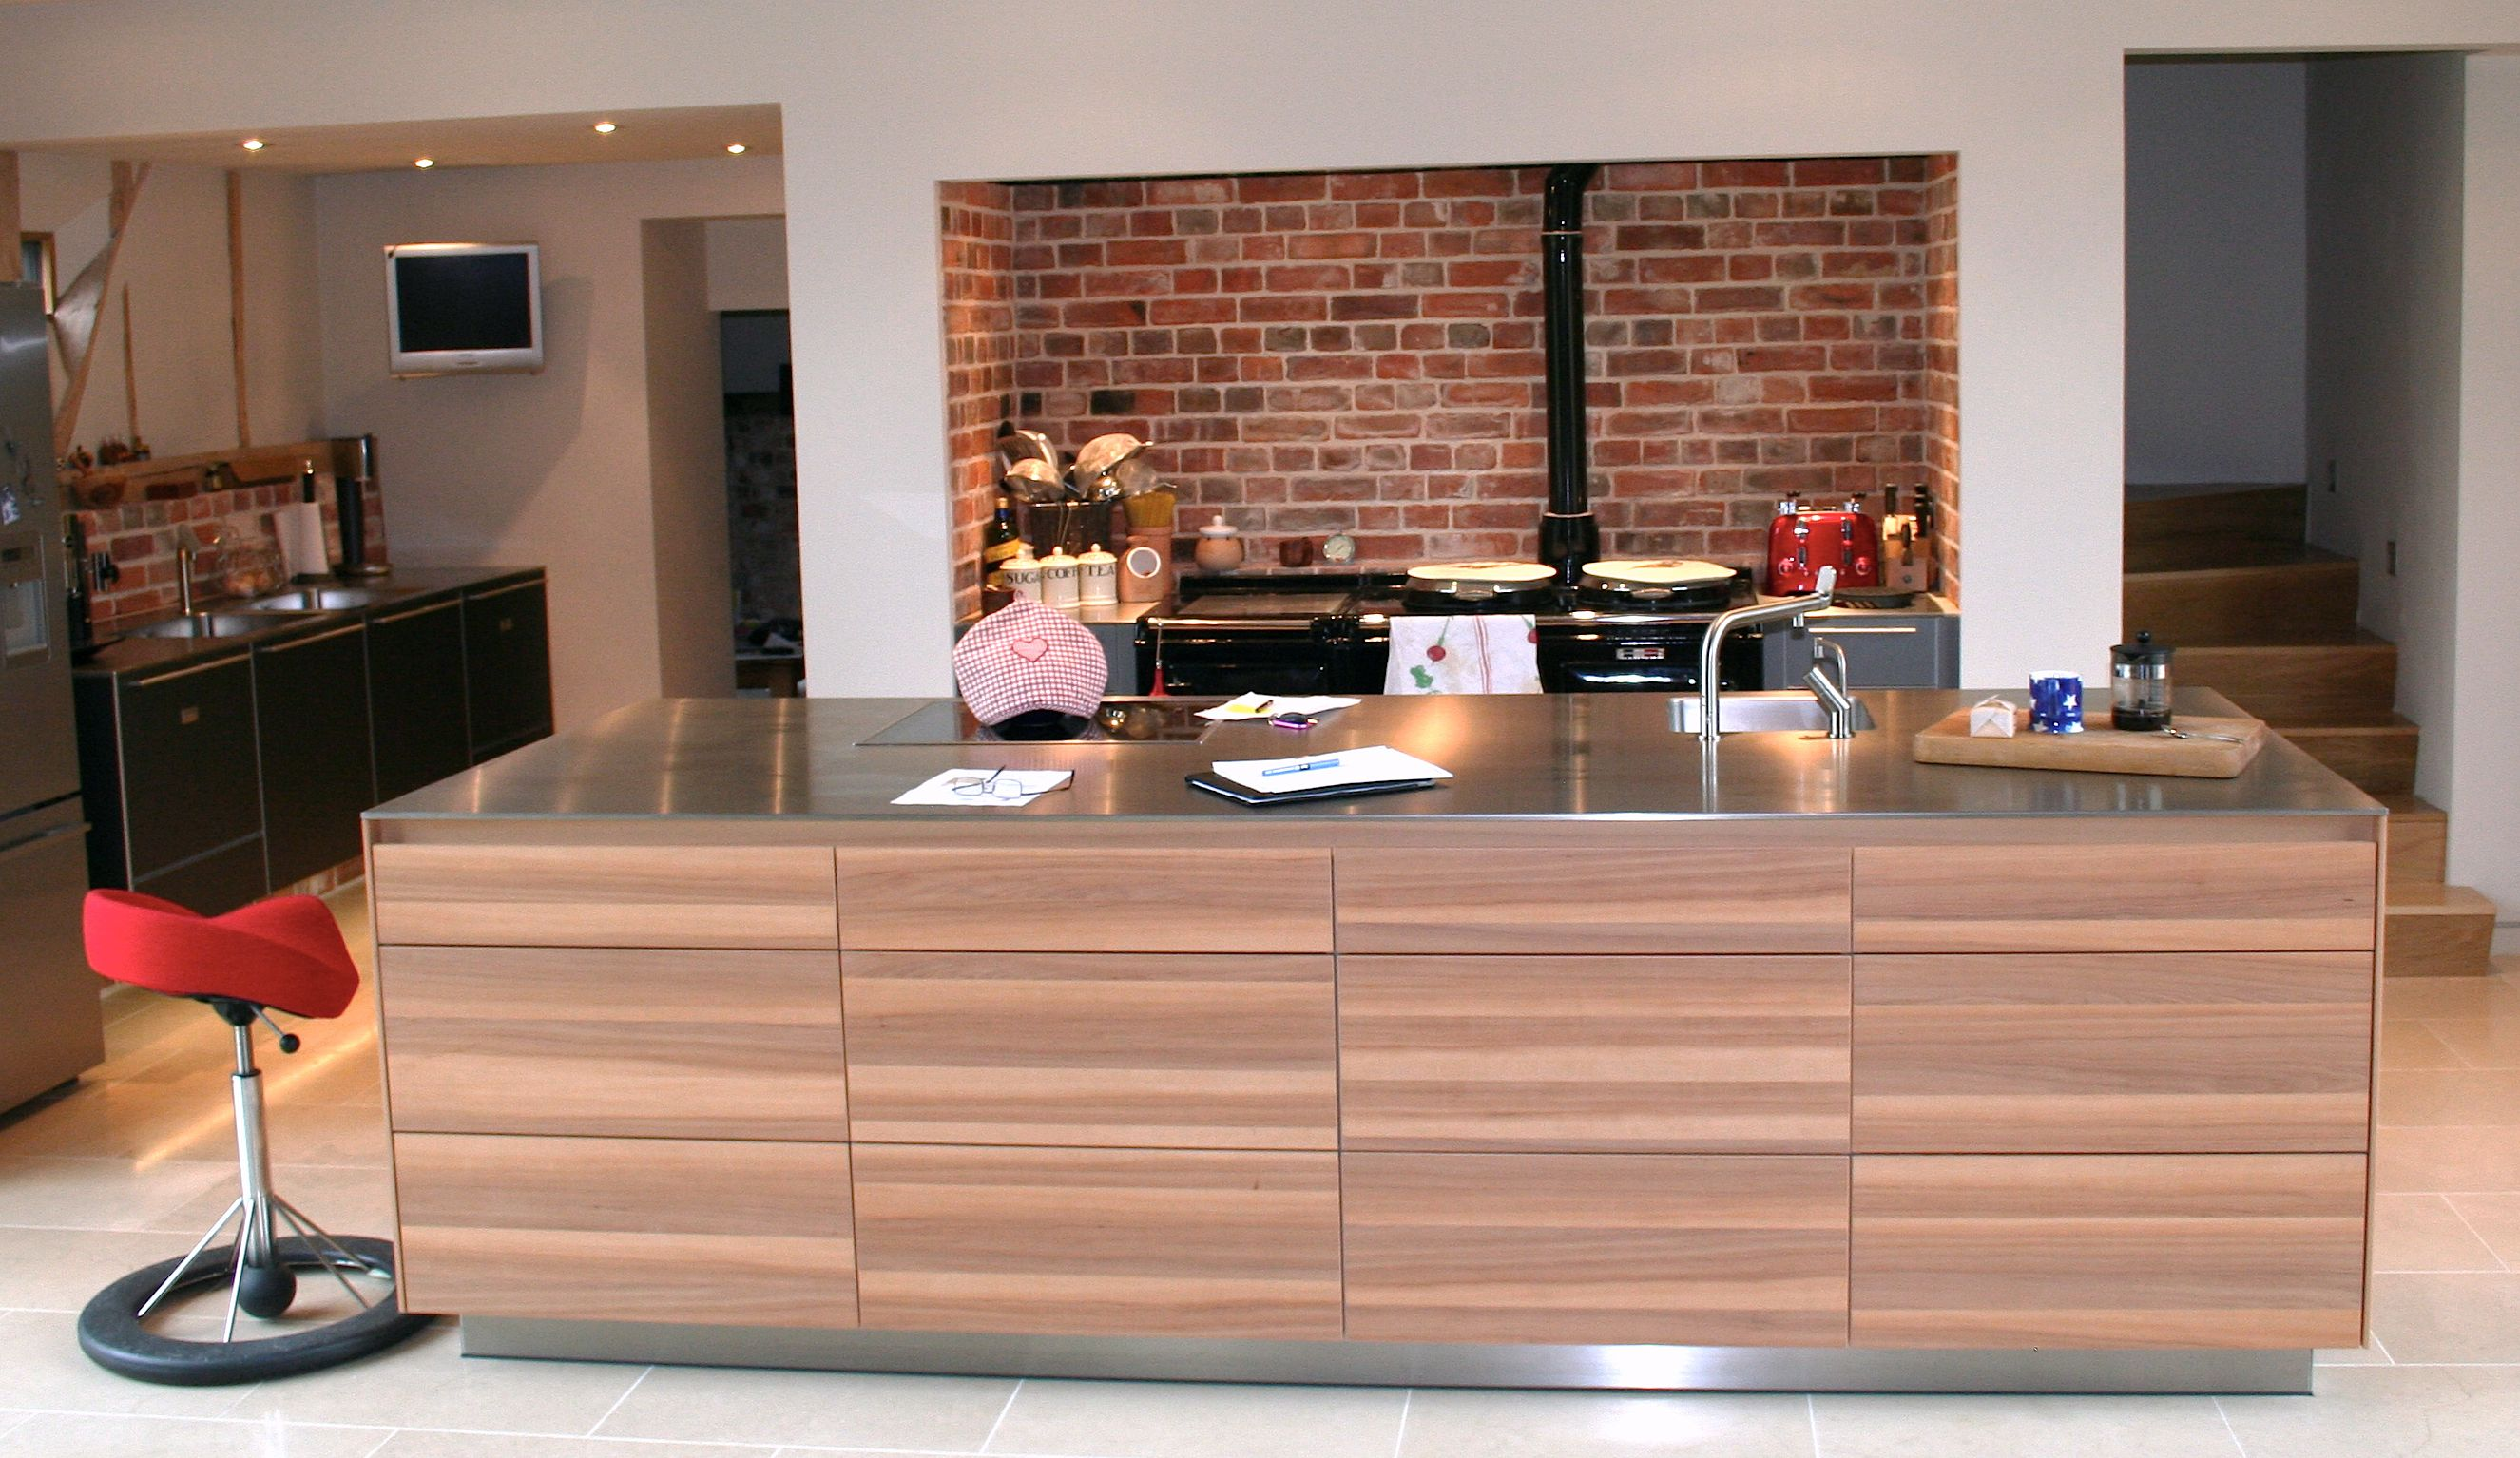 Rustic Style Bulthaup Kitchen With Veneered Island And Black Aga